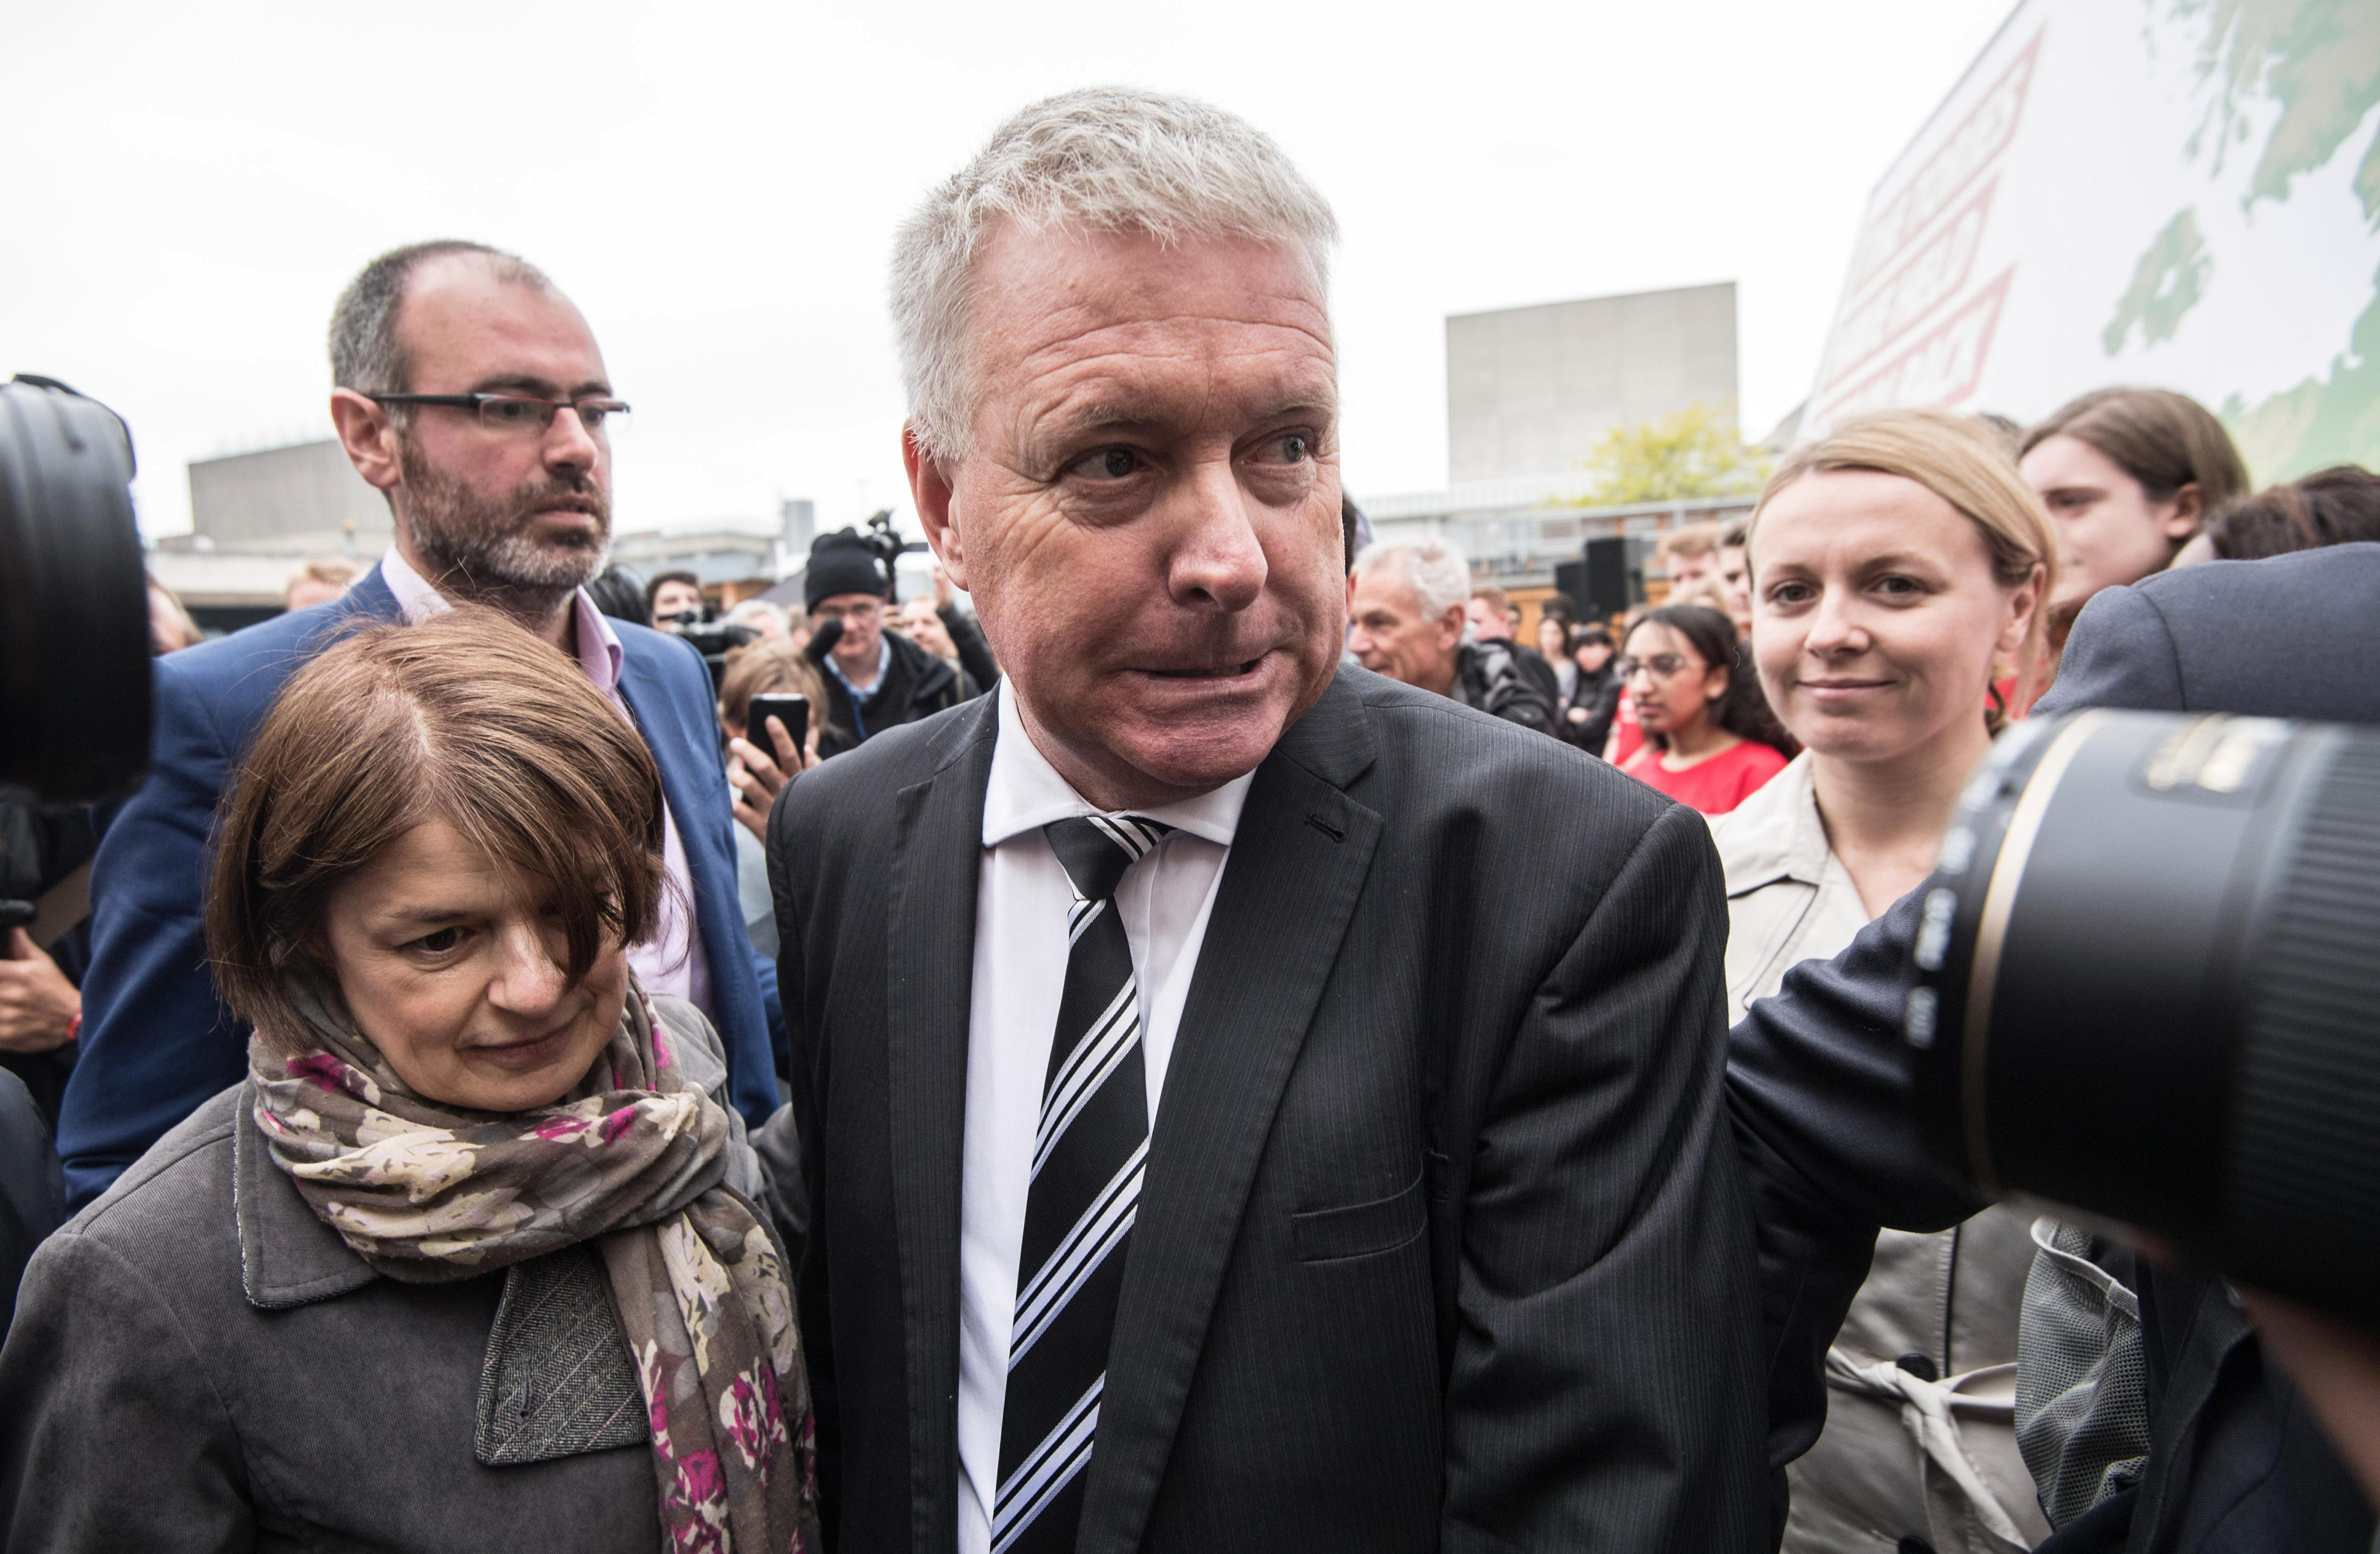 Labour chairman Ian Lavery under pressure to explain why council spent £1m on doing up his football club's ground